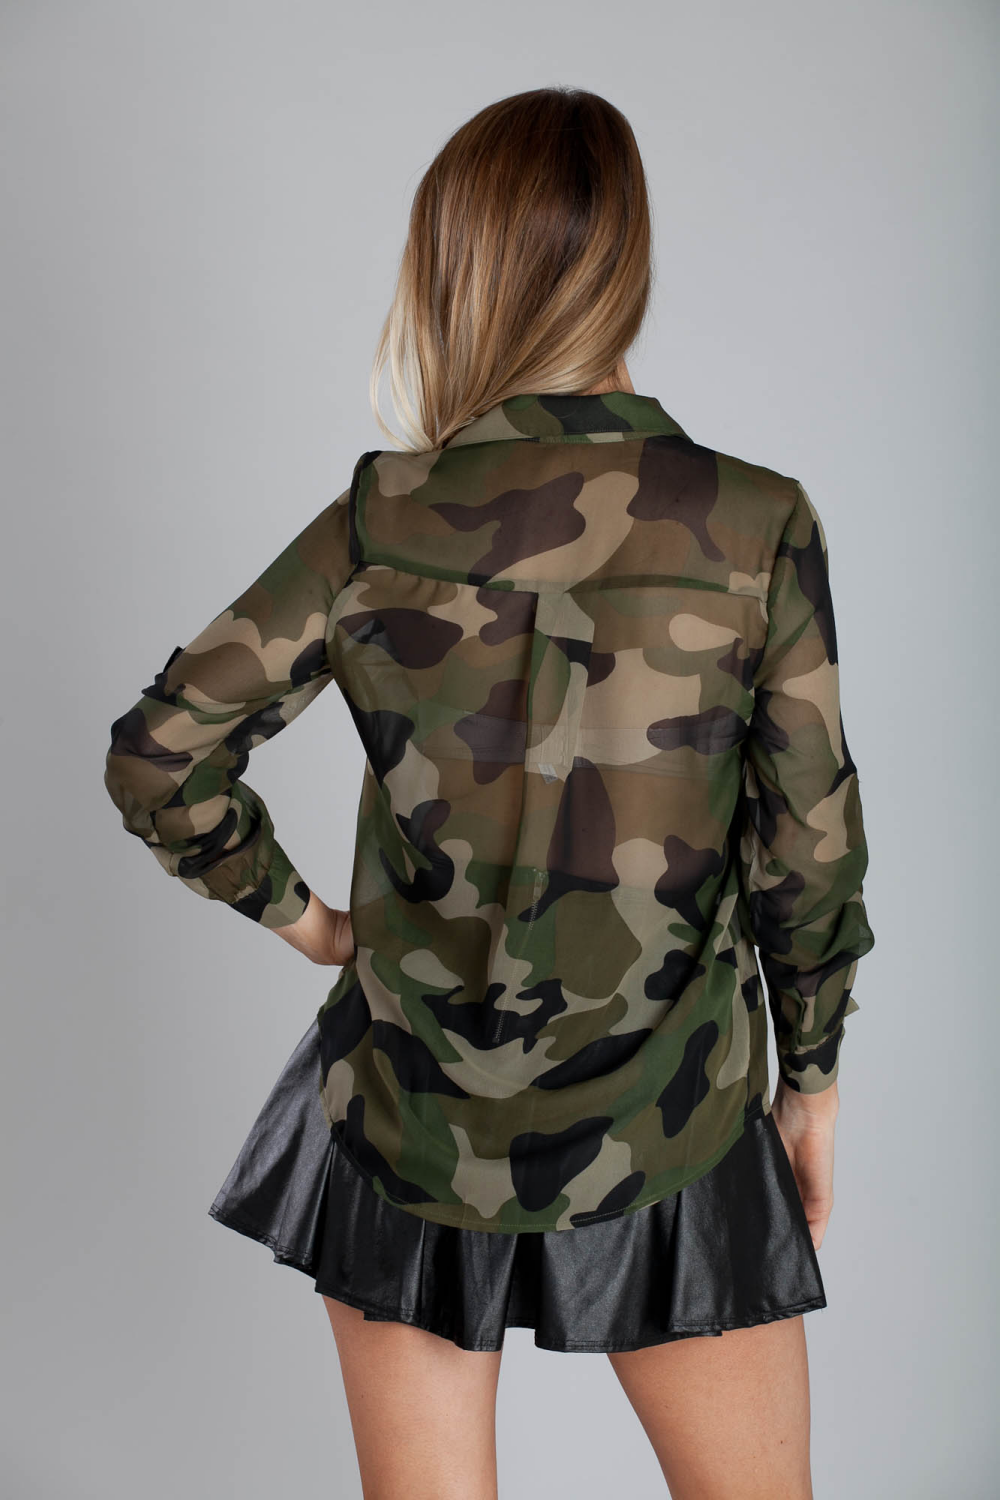 sheer-army-print-blouse2